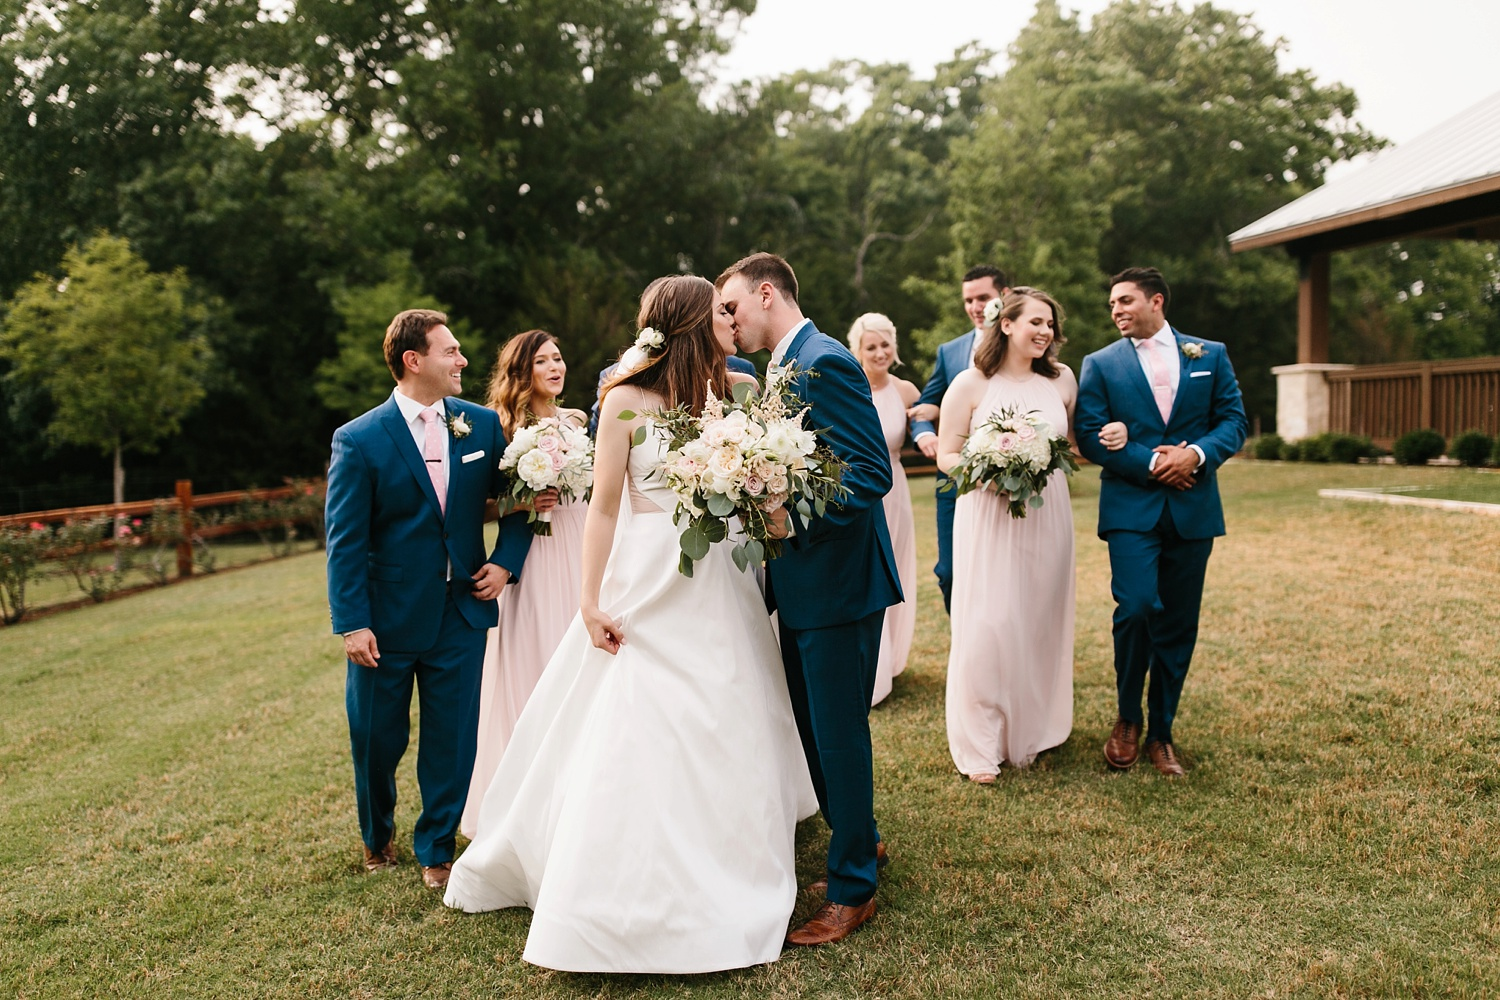 Aleta + Sabian a blush pink and navy blue wedding at The Springs in Anna, TX by North Texas Wedding Photographer _ Rachel Meagan Photography _ 074